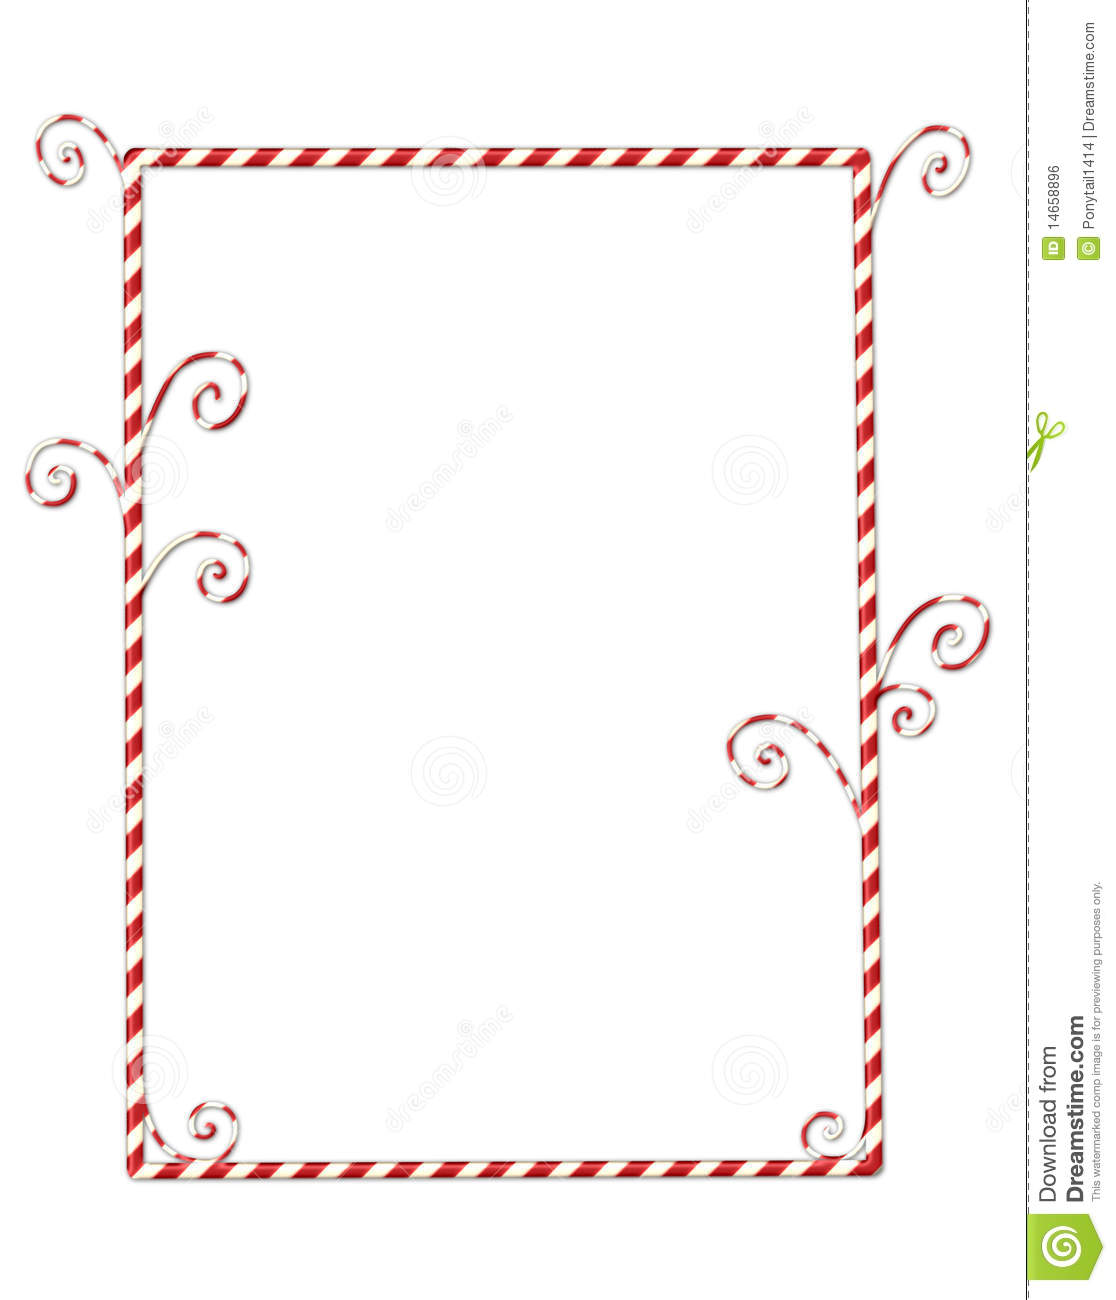 Candy cane clip art black and white candycane border isolated on